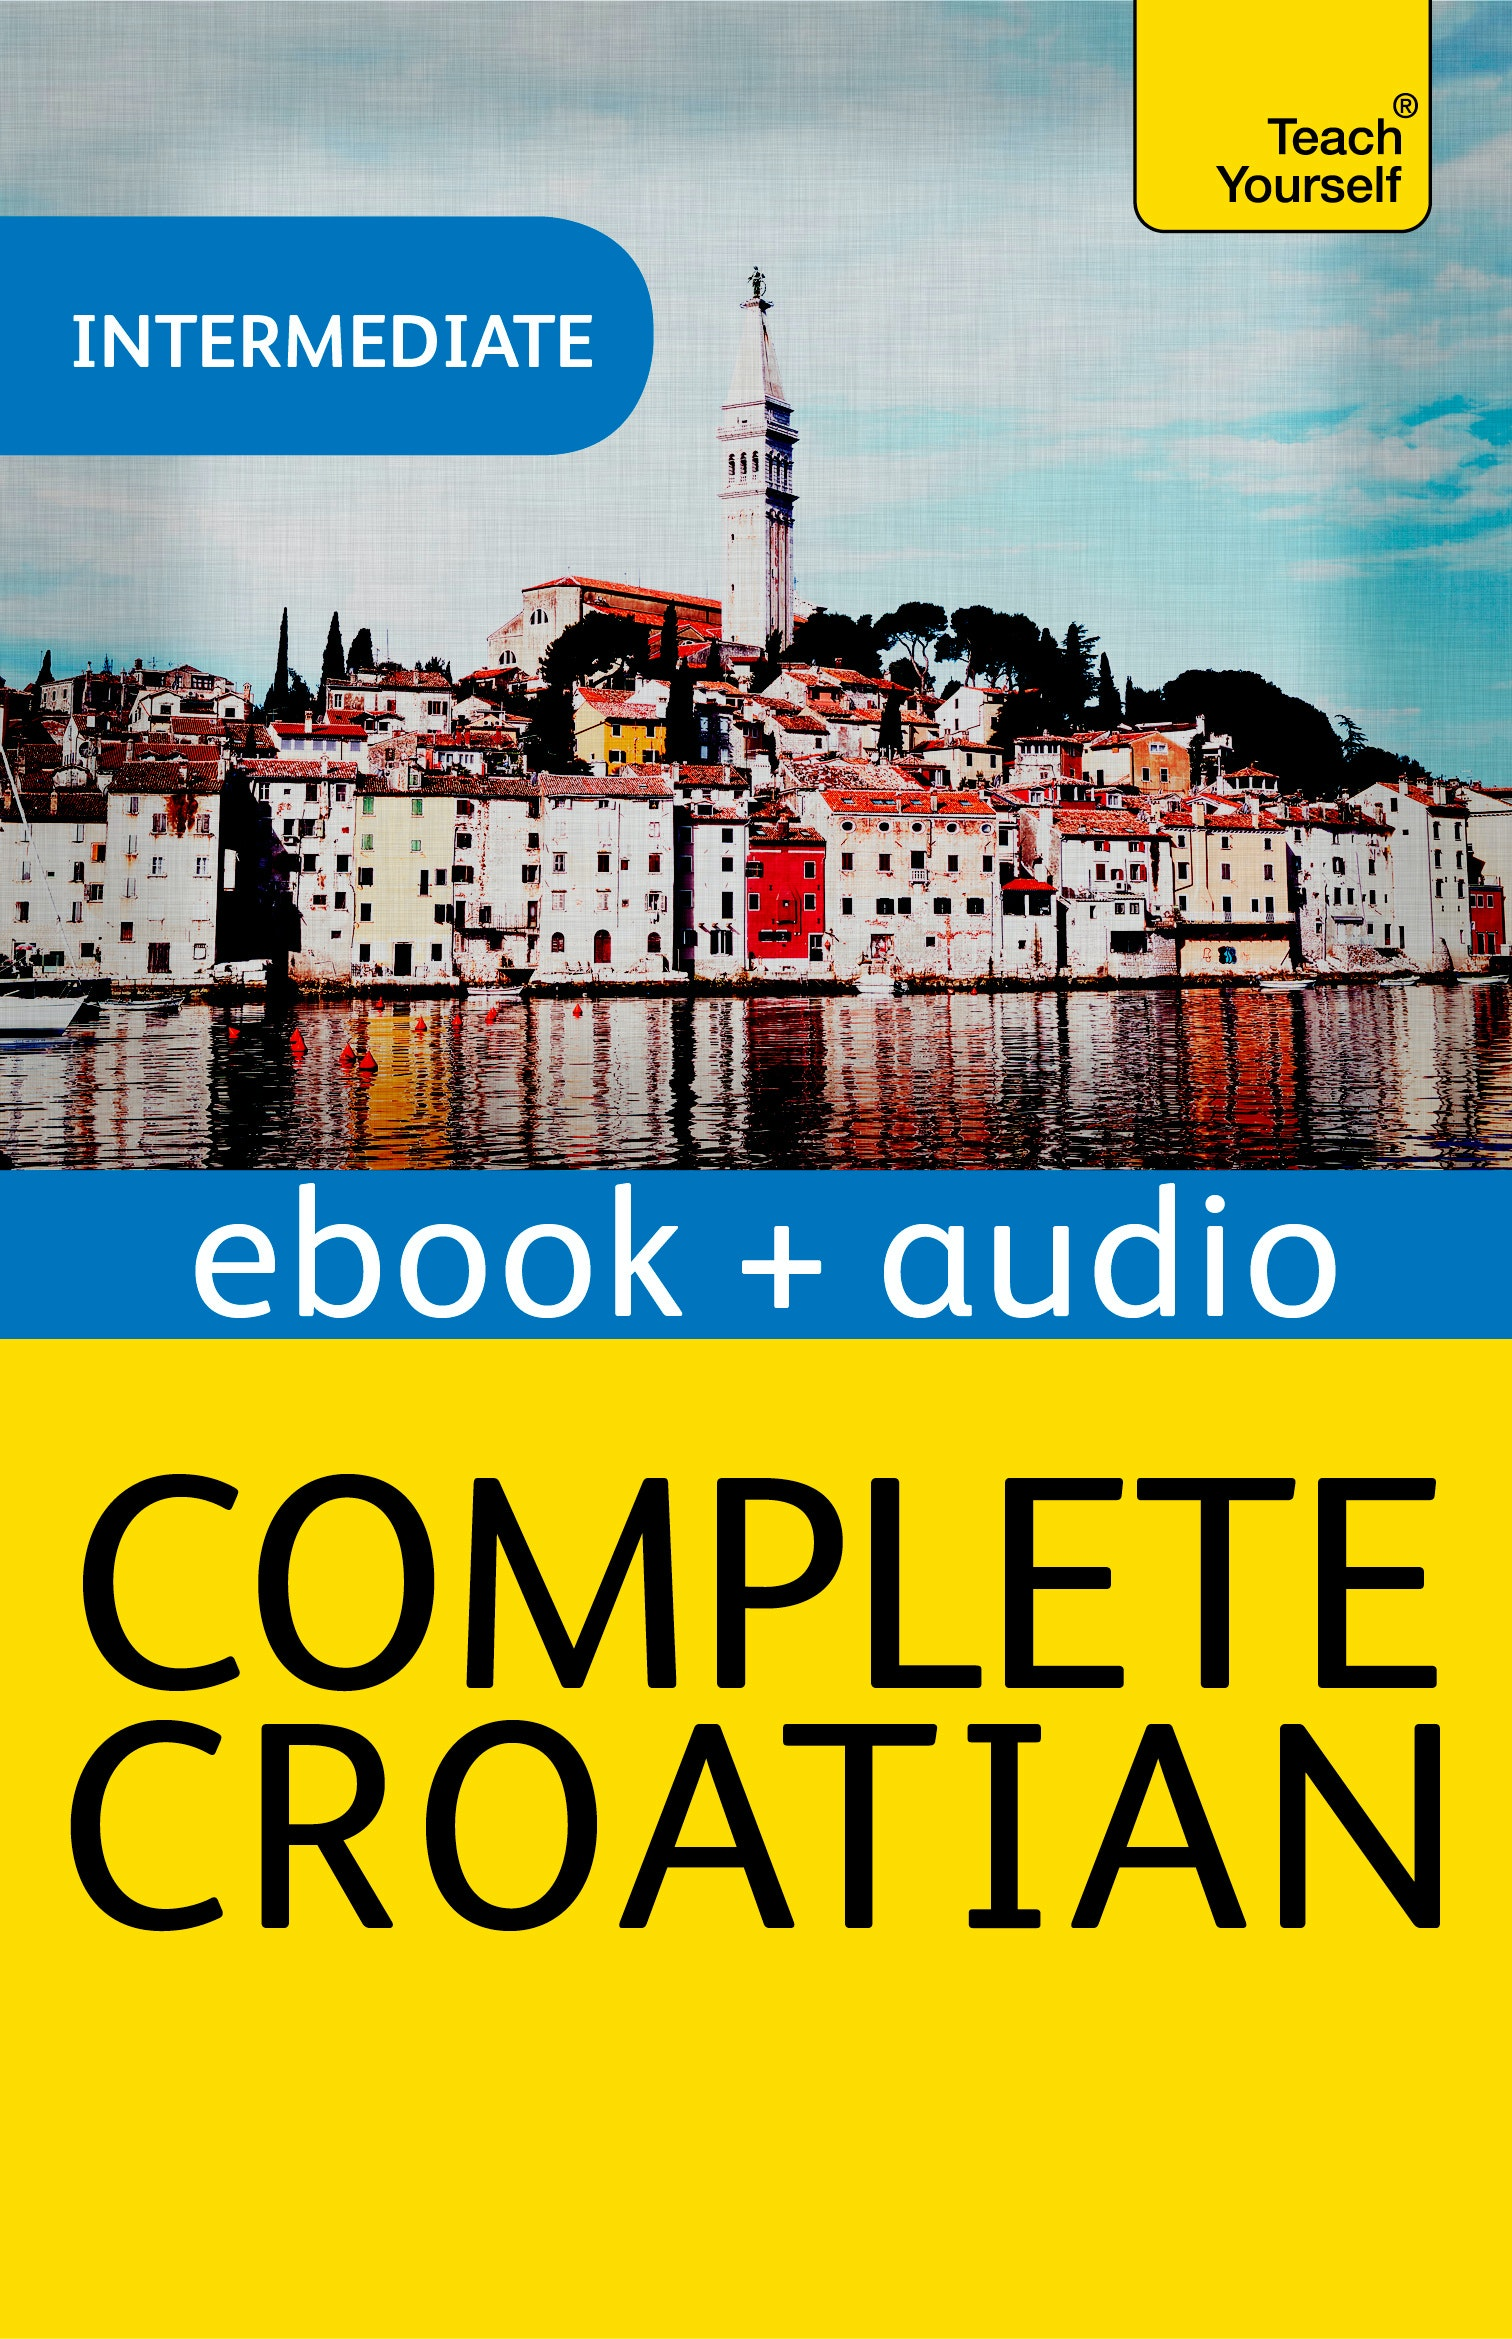 Complete Croatian: Teach Yourself: Audio eBook (Teach Yourself Audio eBooks)